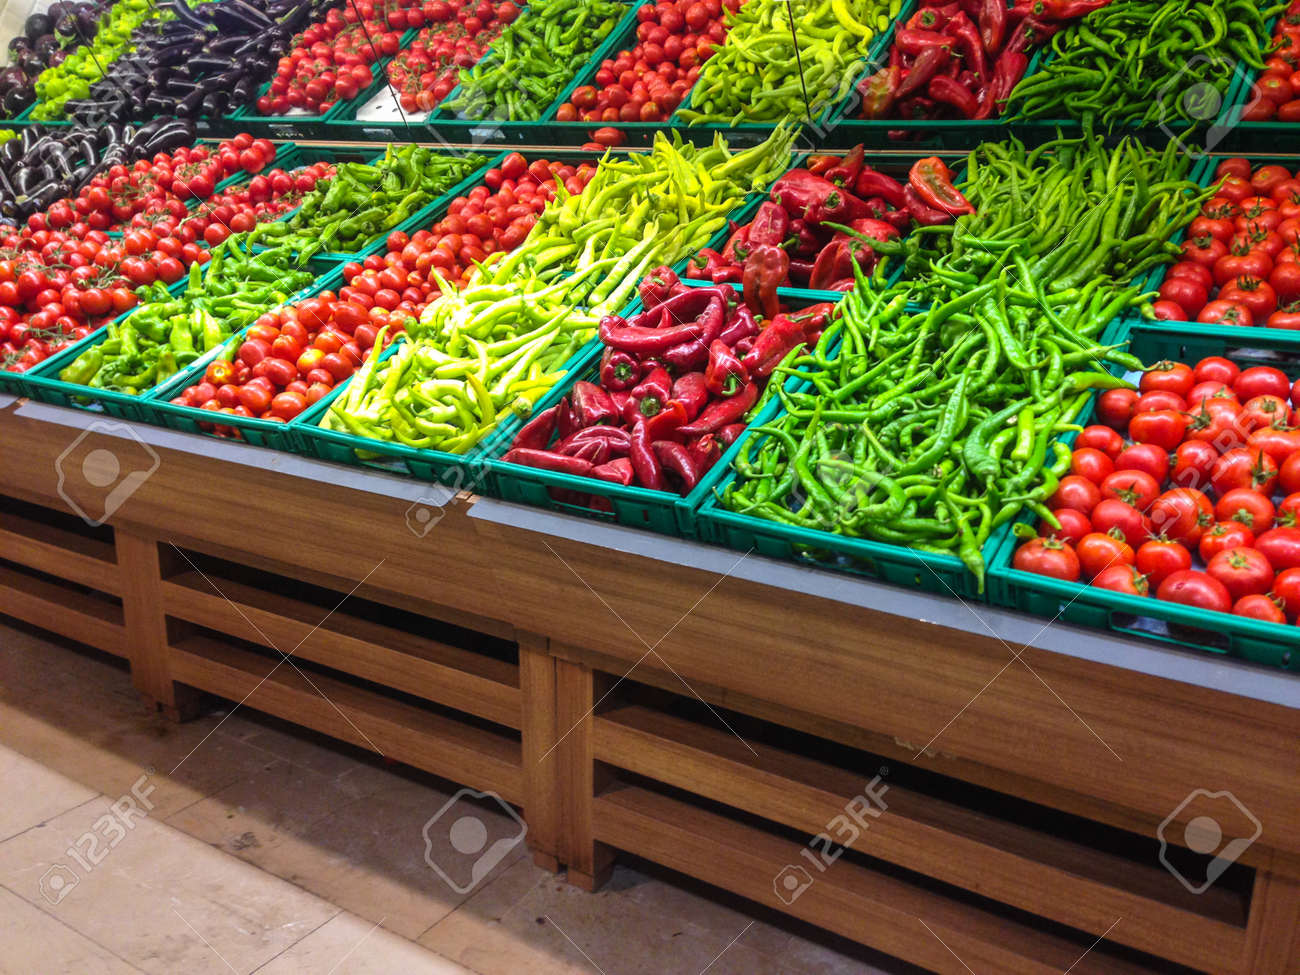 Market with various colorful fresh fruits and vegetables - 30962322